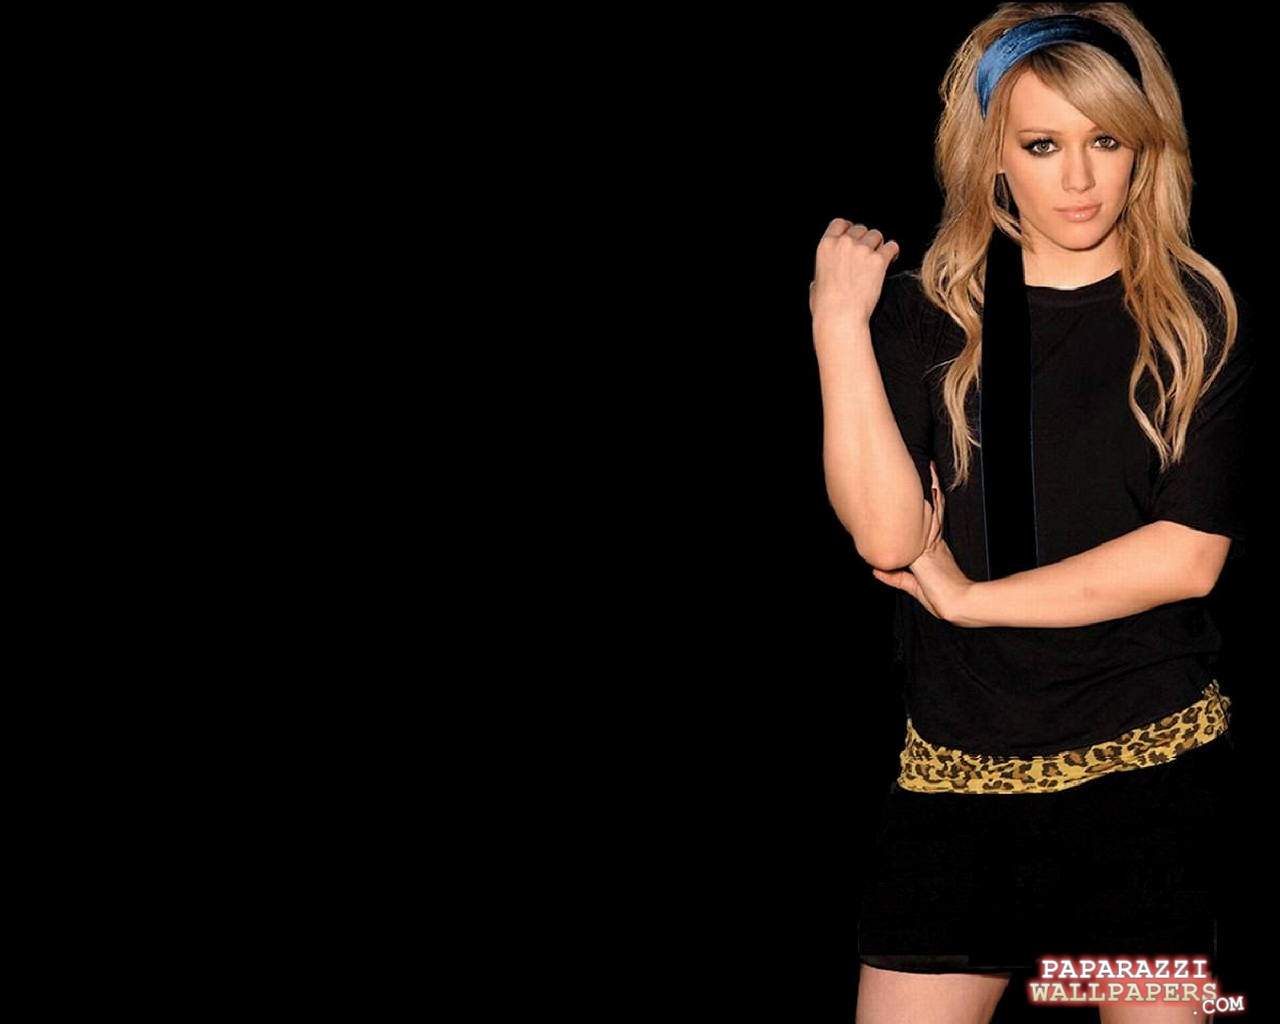 hilary duff wallpapers 050